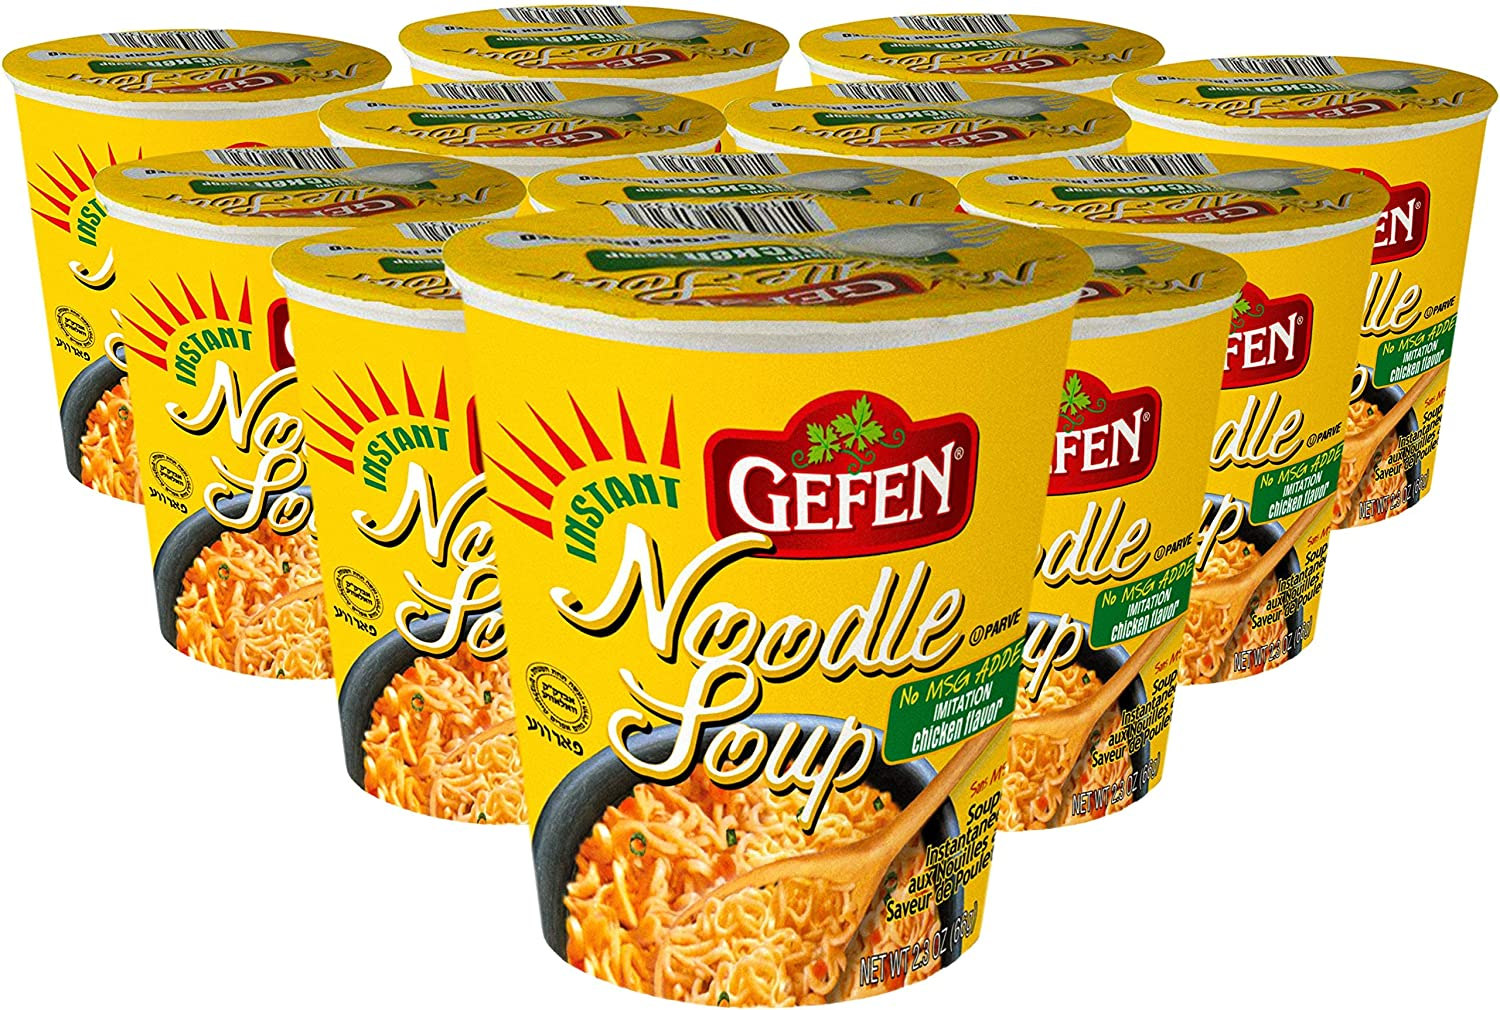 Gefen Instant Noodle Soup High quality new Cup 2.3oz MSG Chicken 12 No So specialty shop pack